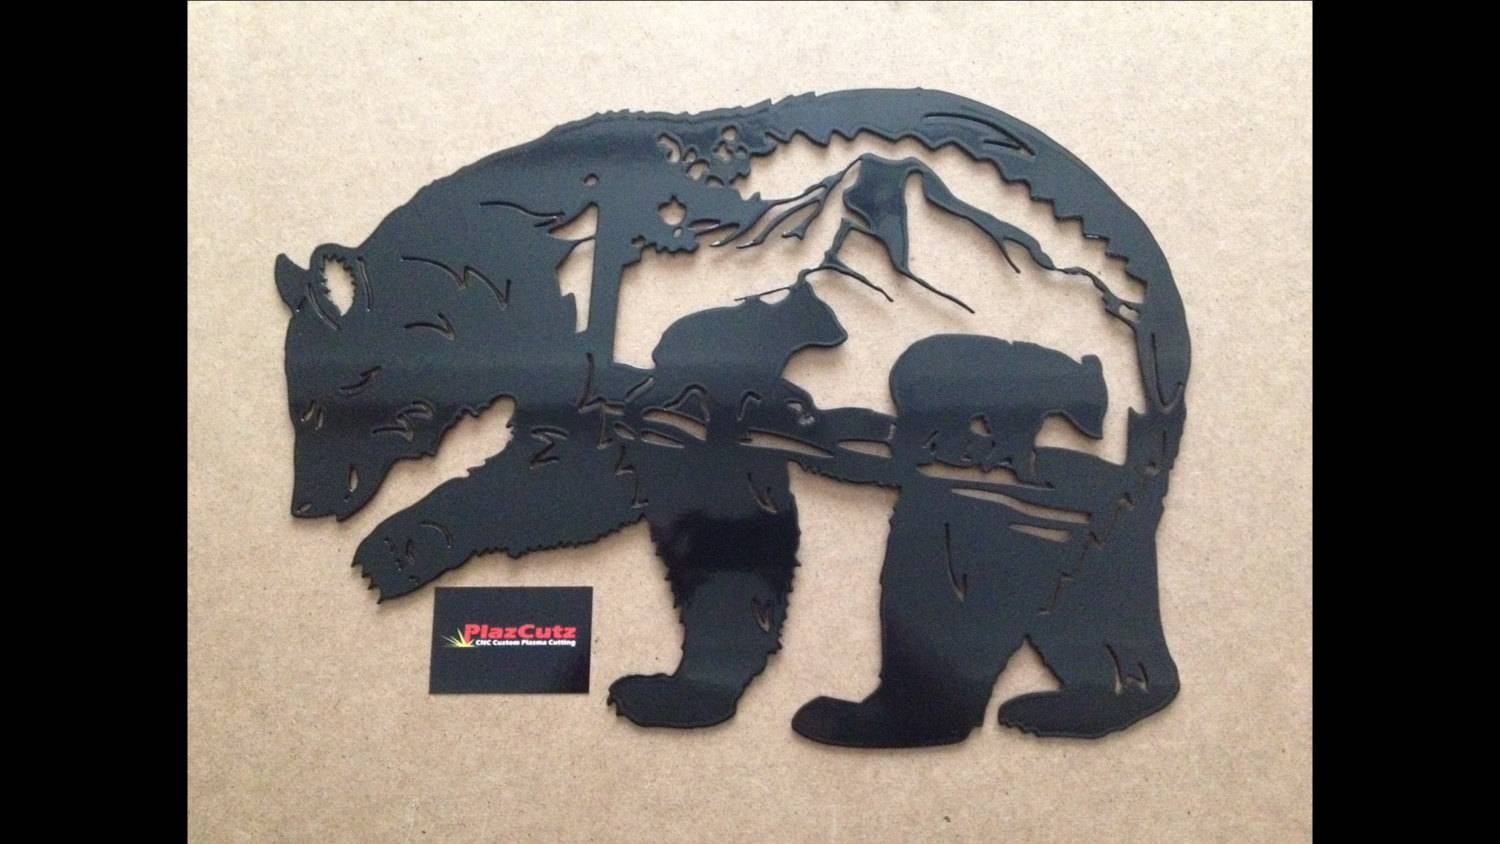 Bear Scene Metal Wall Art Plaque Cnc Plasma Cut And Powder With Most Current Plasma Cut Metal Wall Art (Gallery 2 of 20)